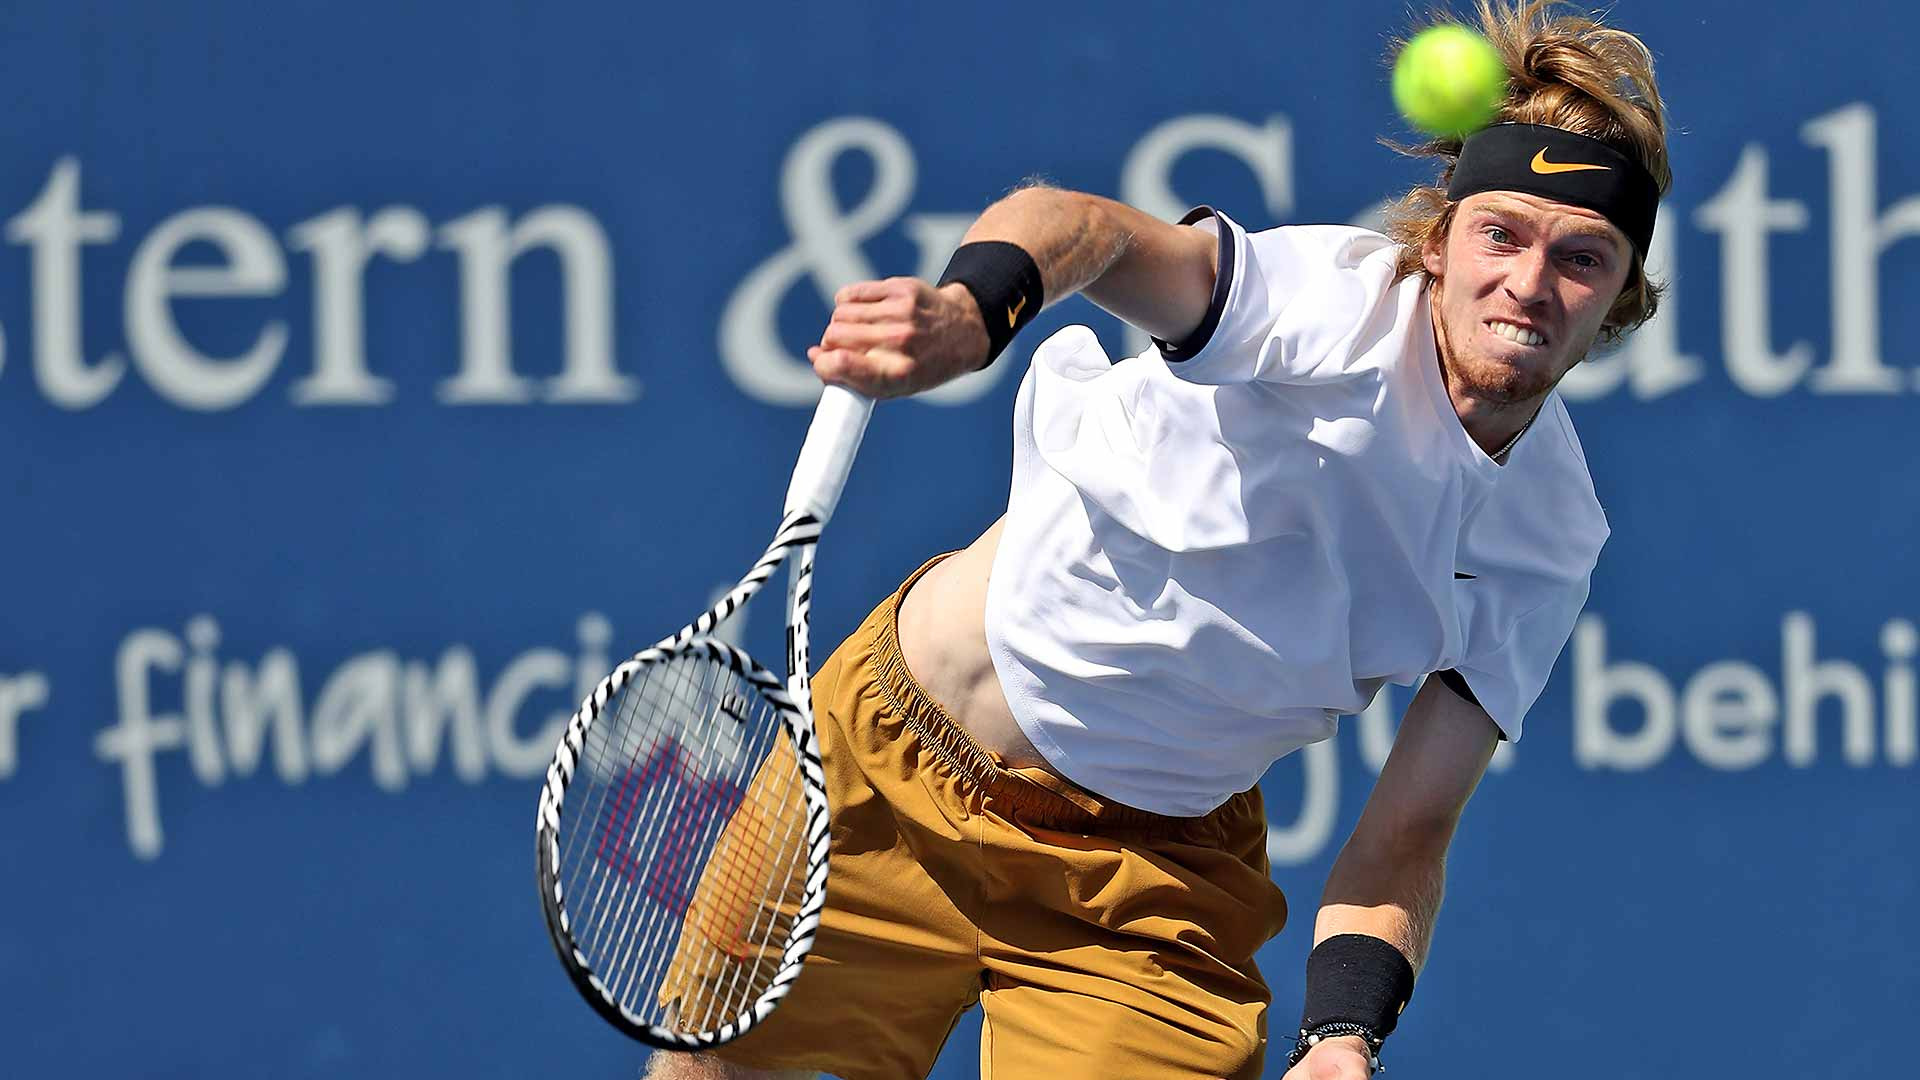 Andrey Rublev stuns Roger Federer to claim the second Top 5 win of his career.